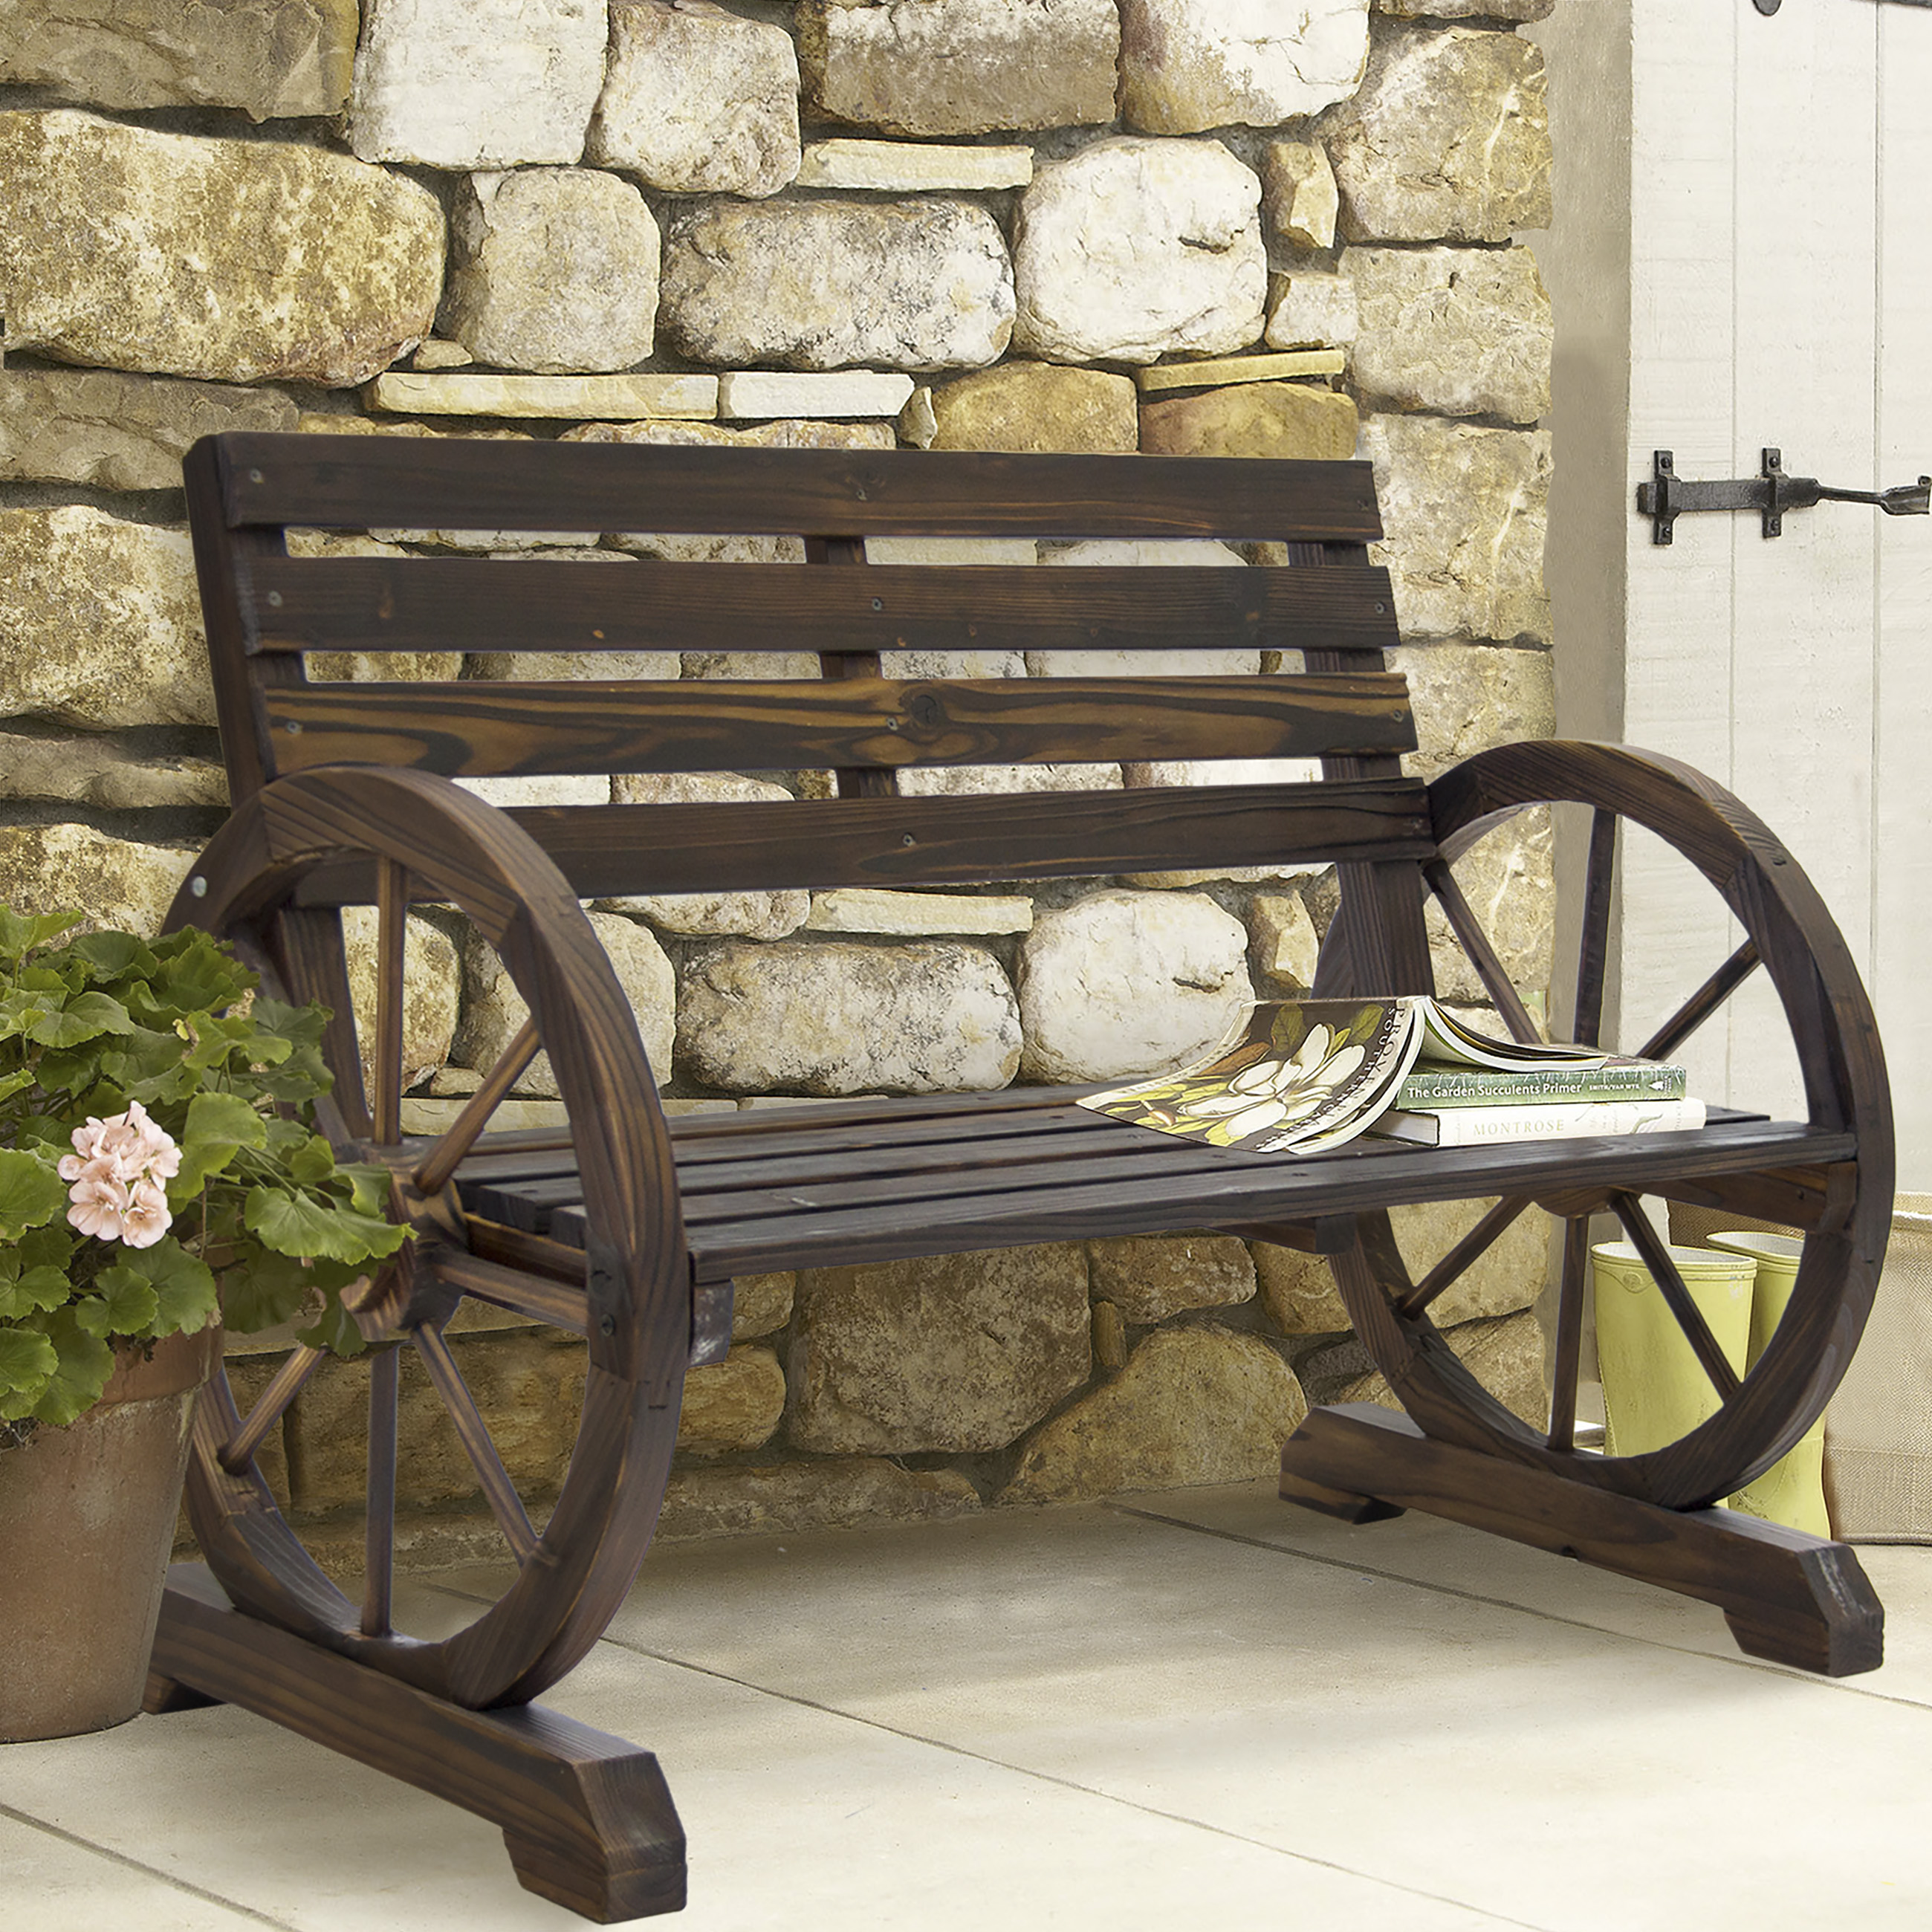 BCP Patio Garden Wooden Wagon Wheel Bench Rustic Wood Design Outdoor Furniture by